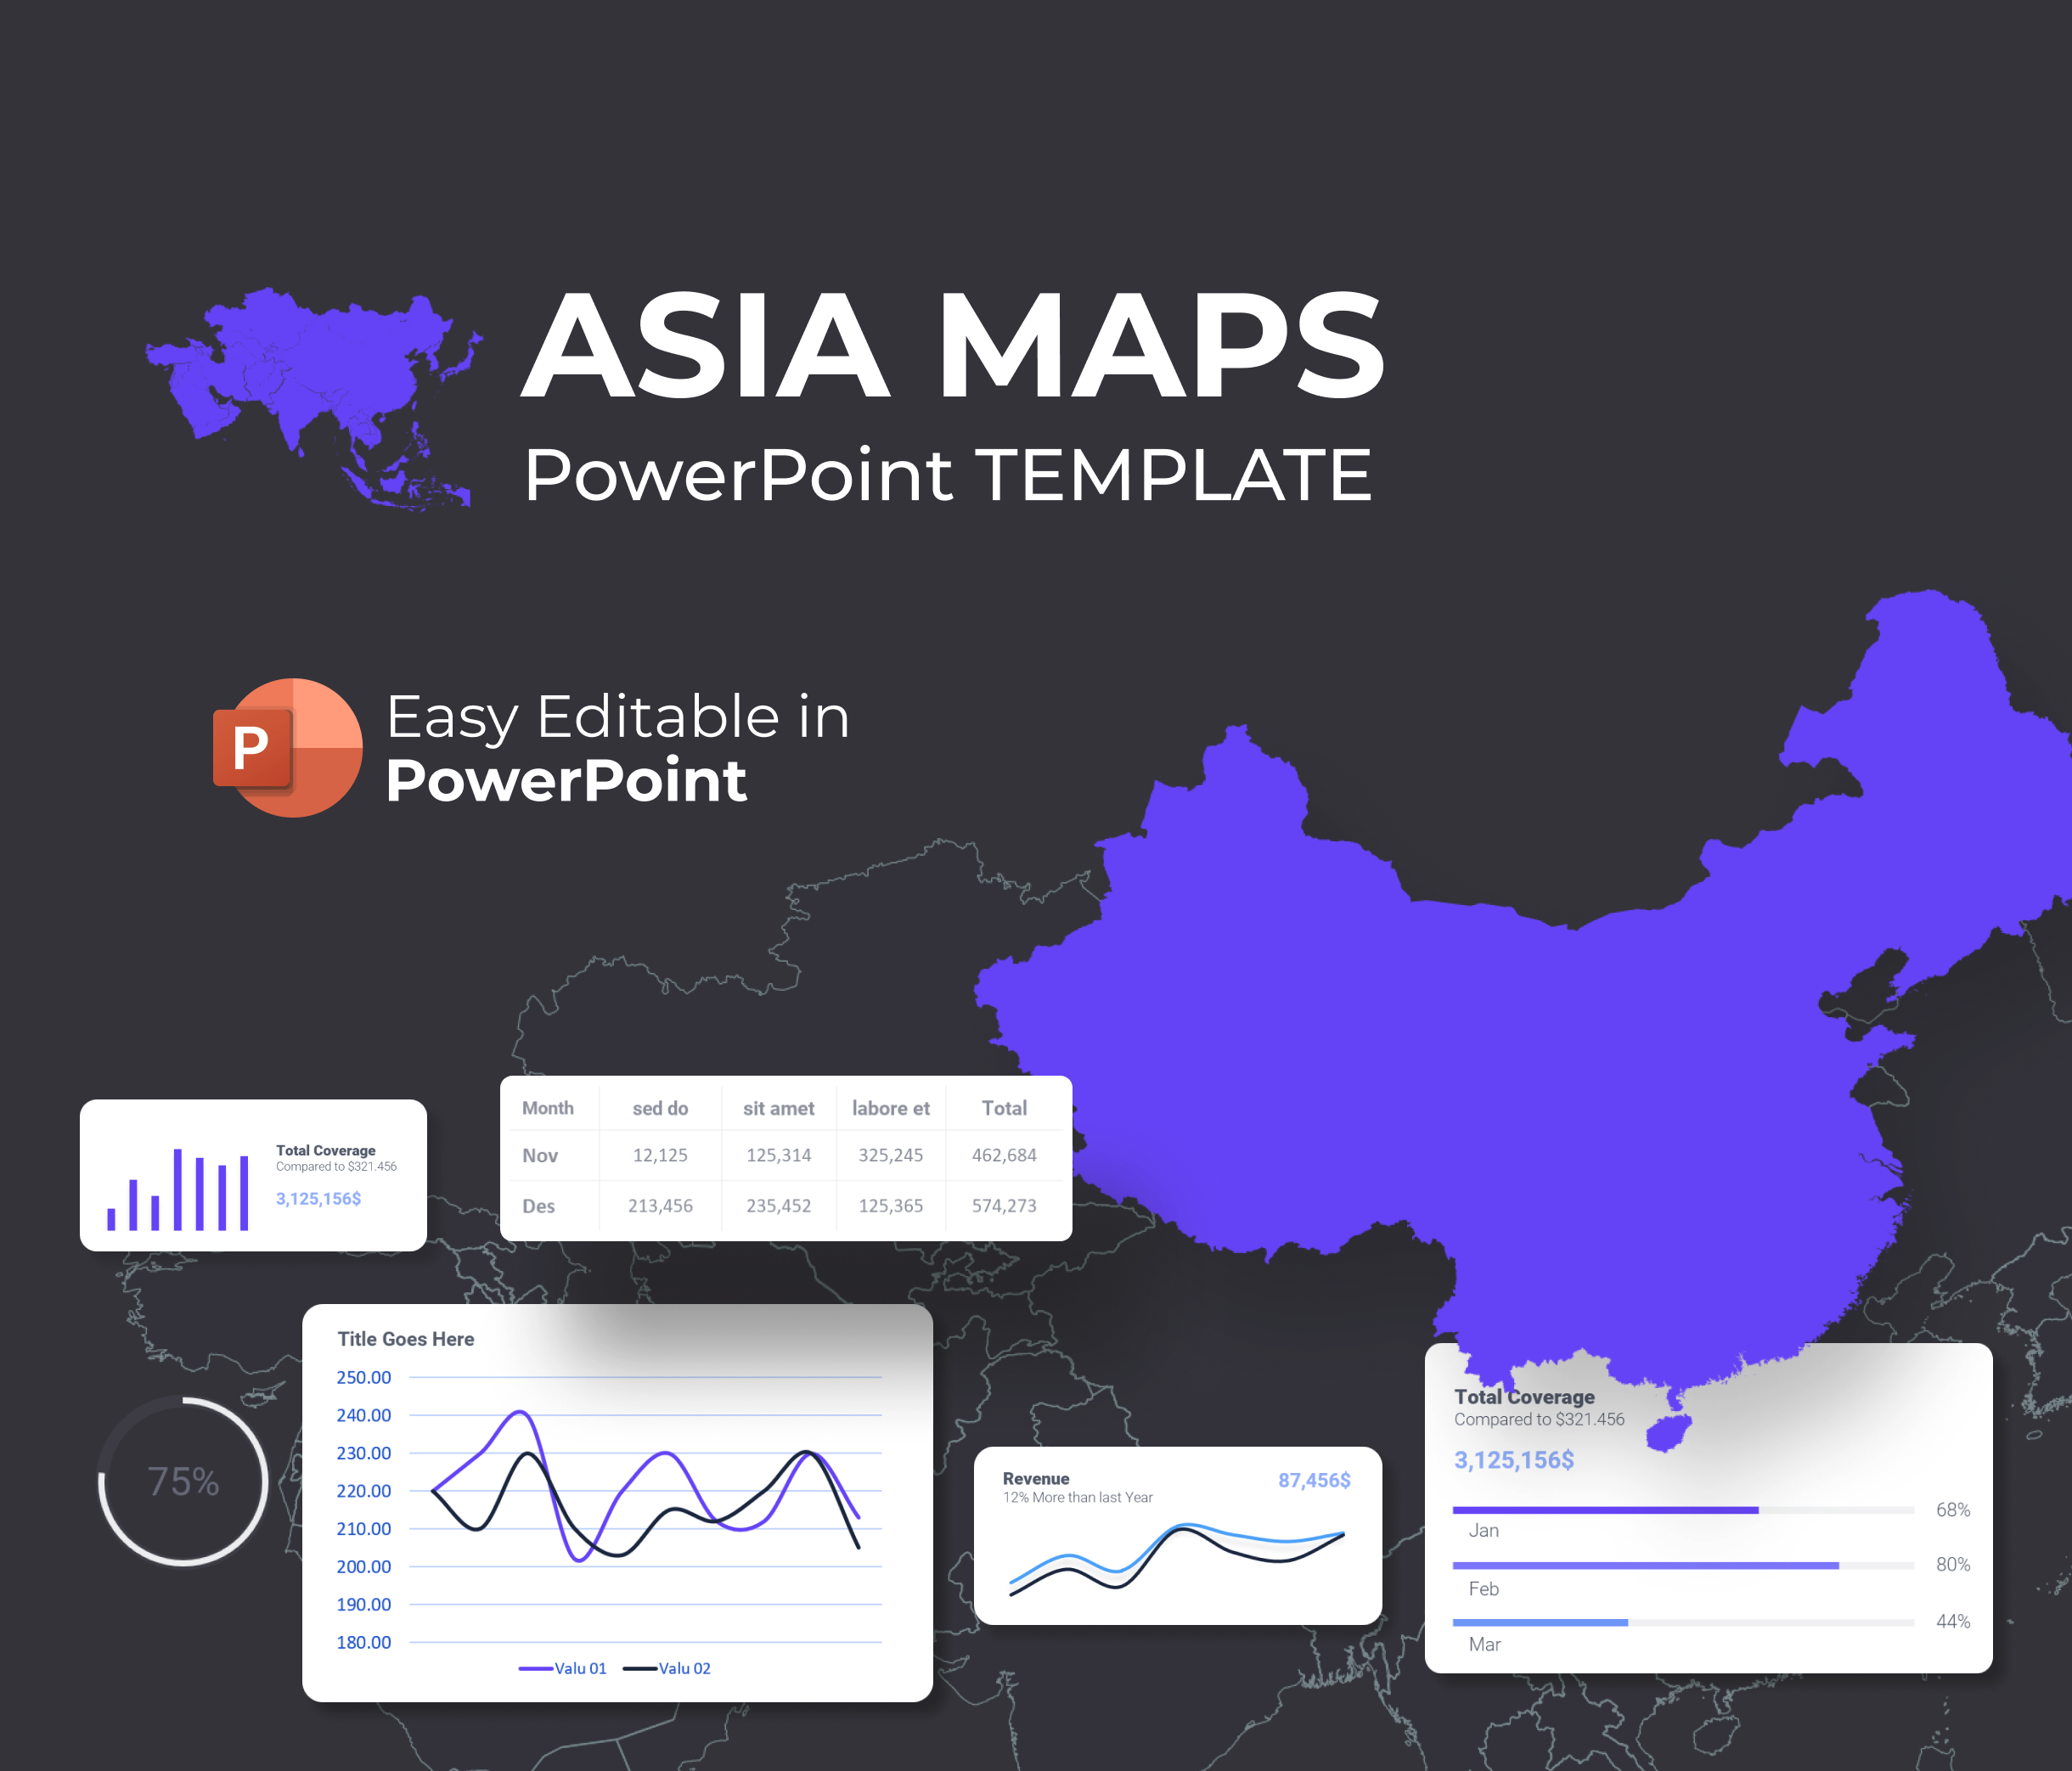 Asia Maps PowerPoint Presentation Template